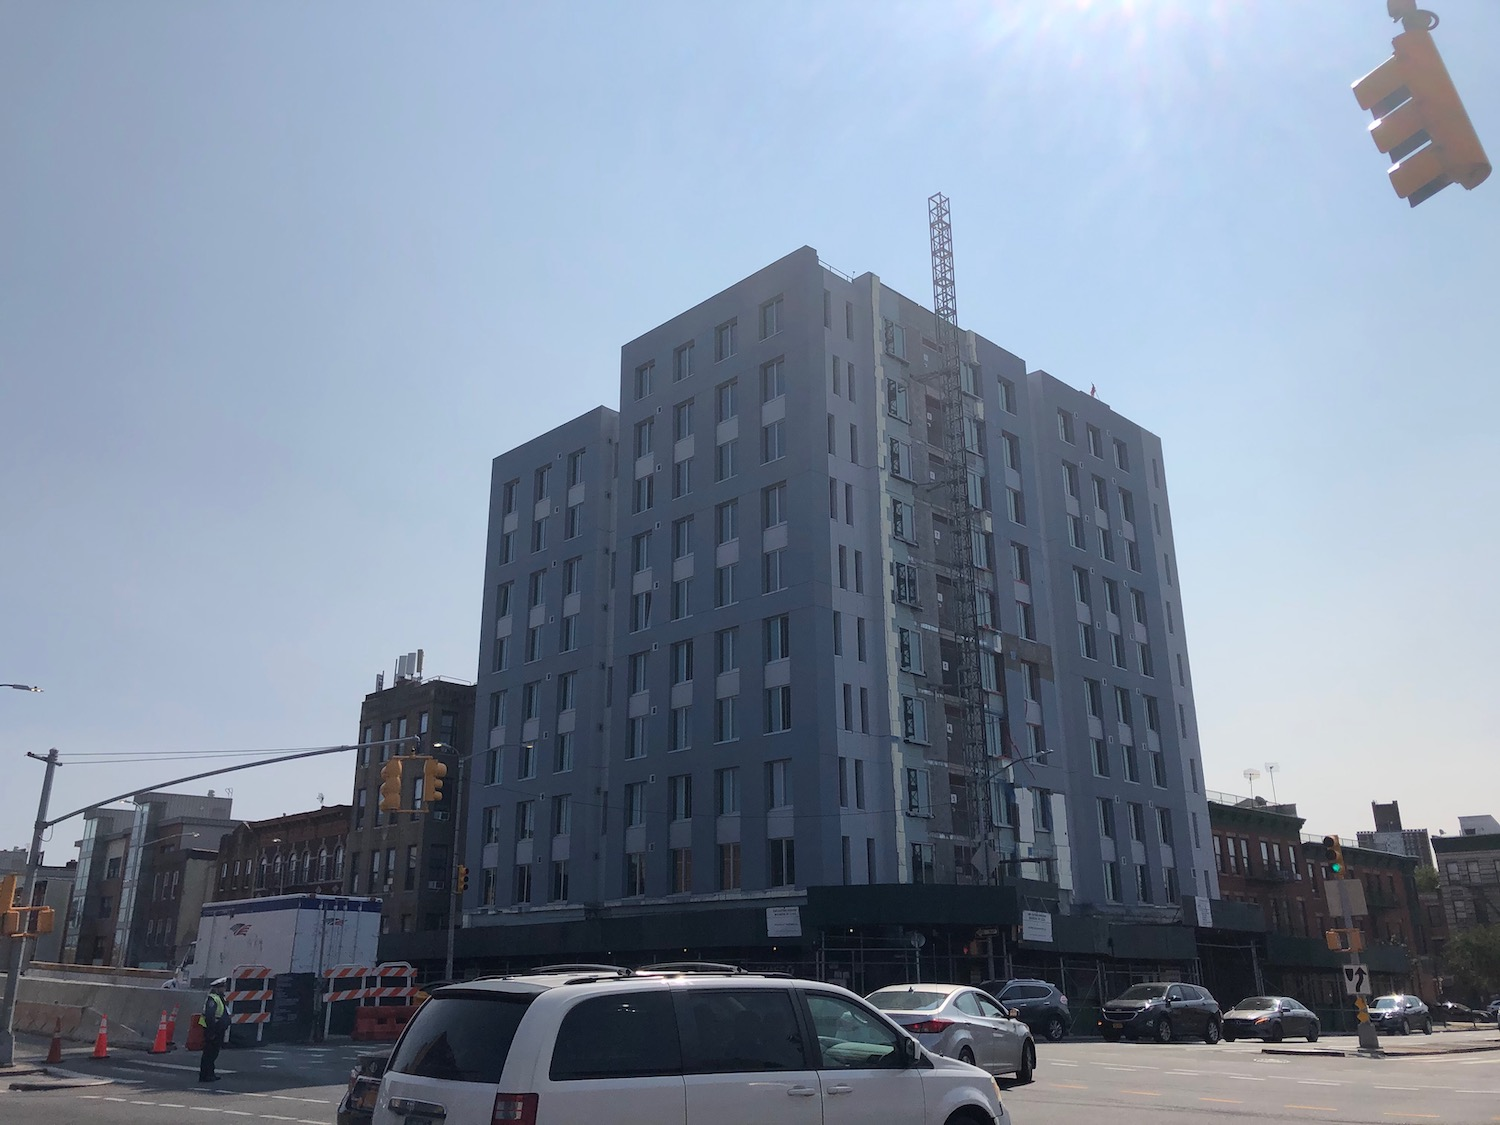 1860 Eastern Parkway in Brownsville, Brooklyn via NY Housing Connect